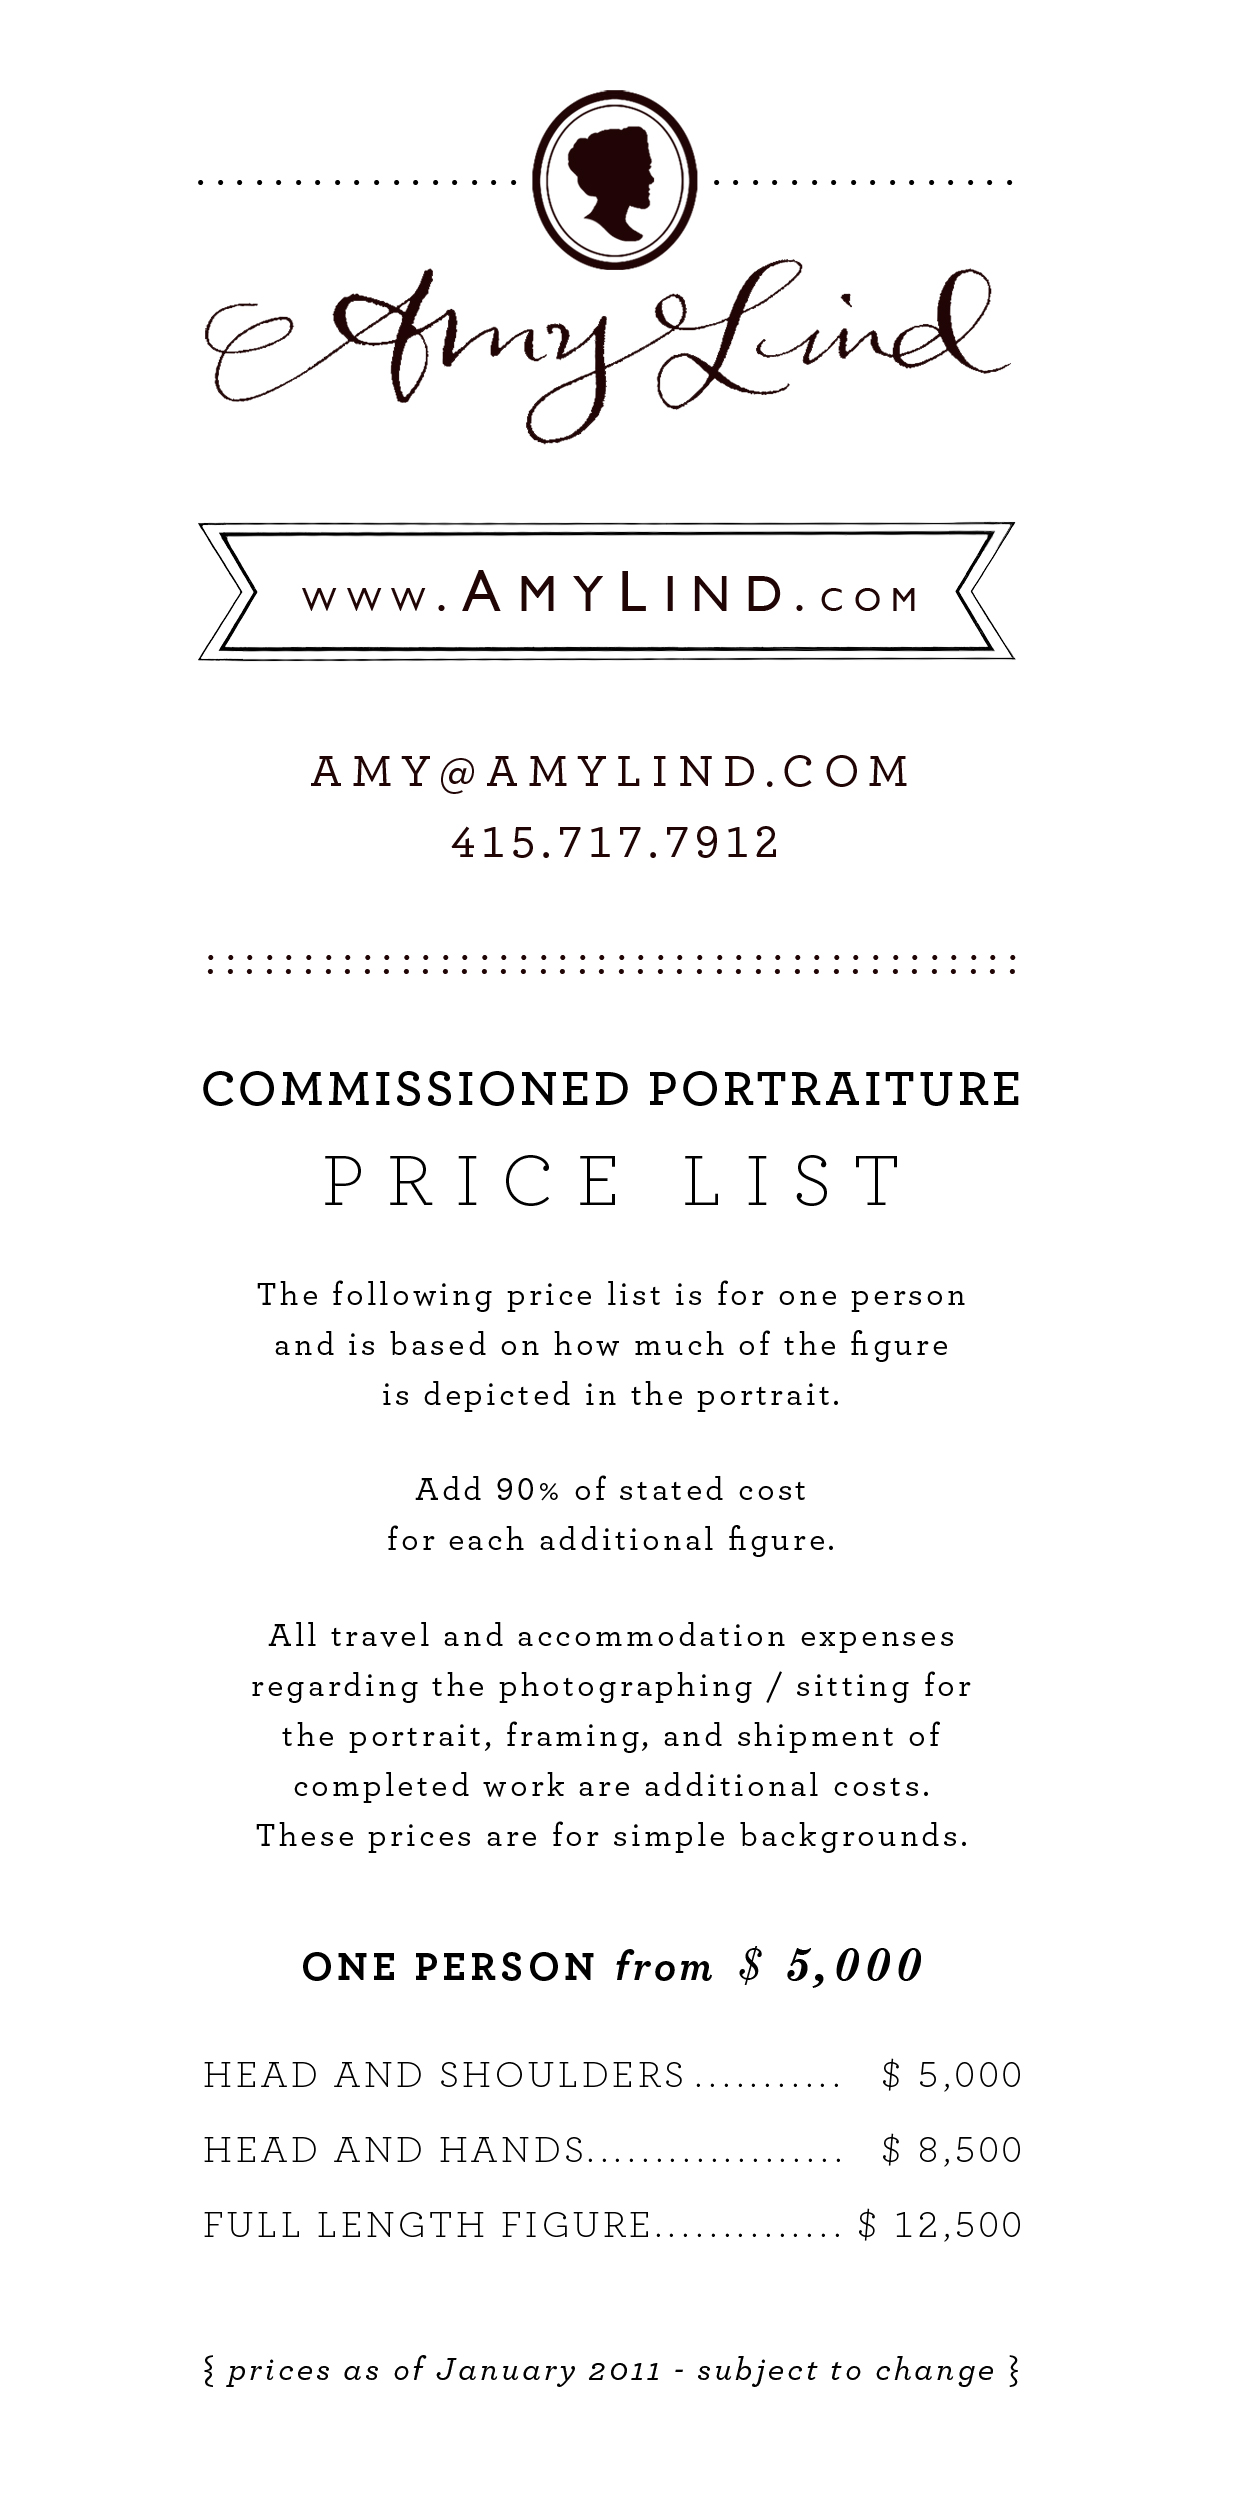 AMY_LIND-Portrait_Pricing.jpg